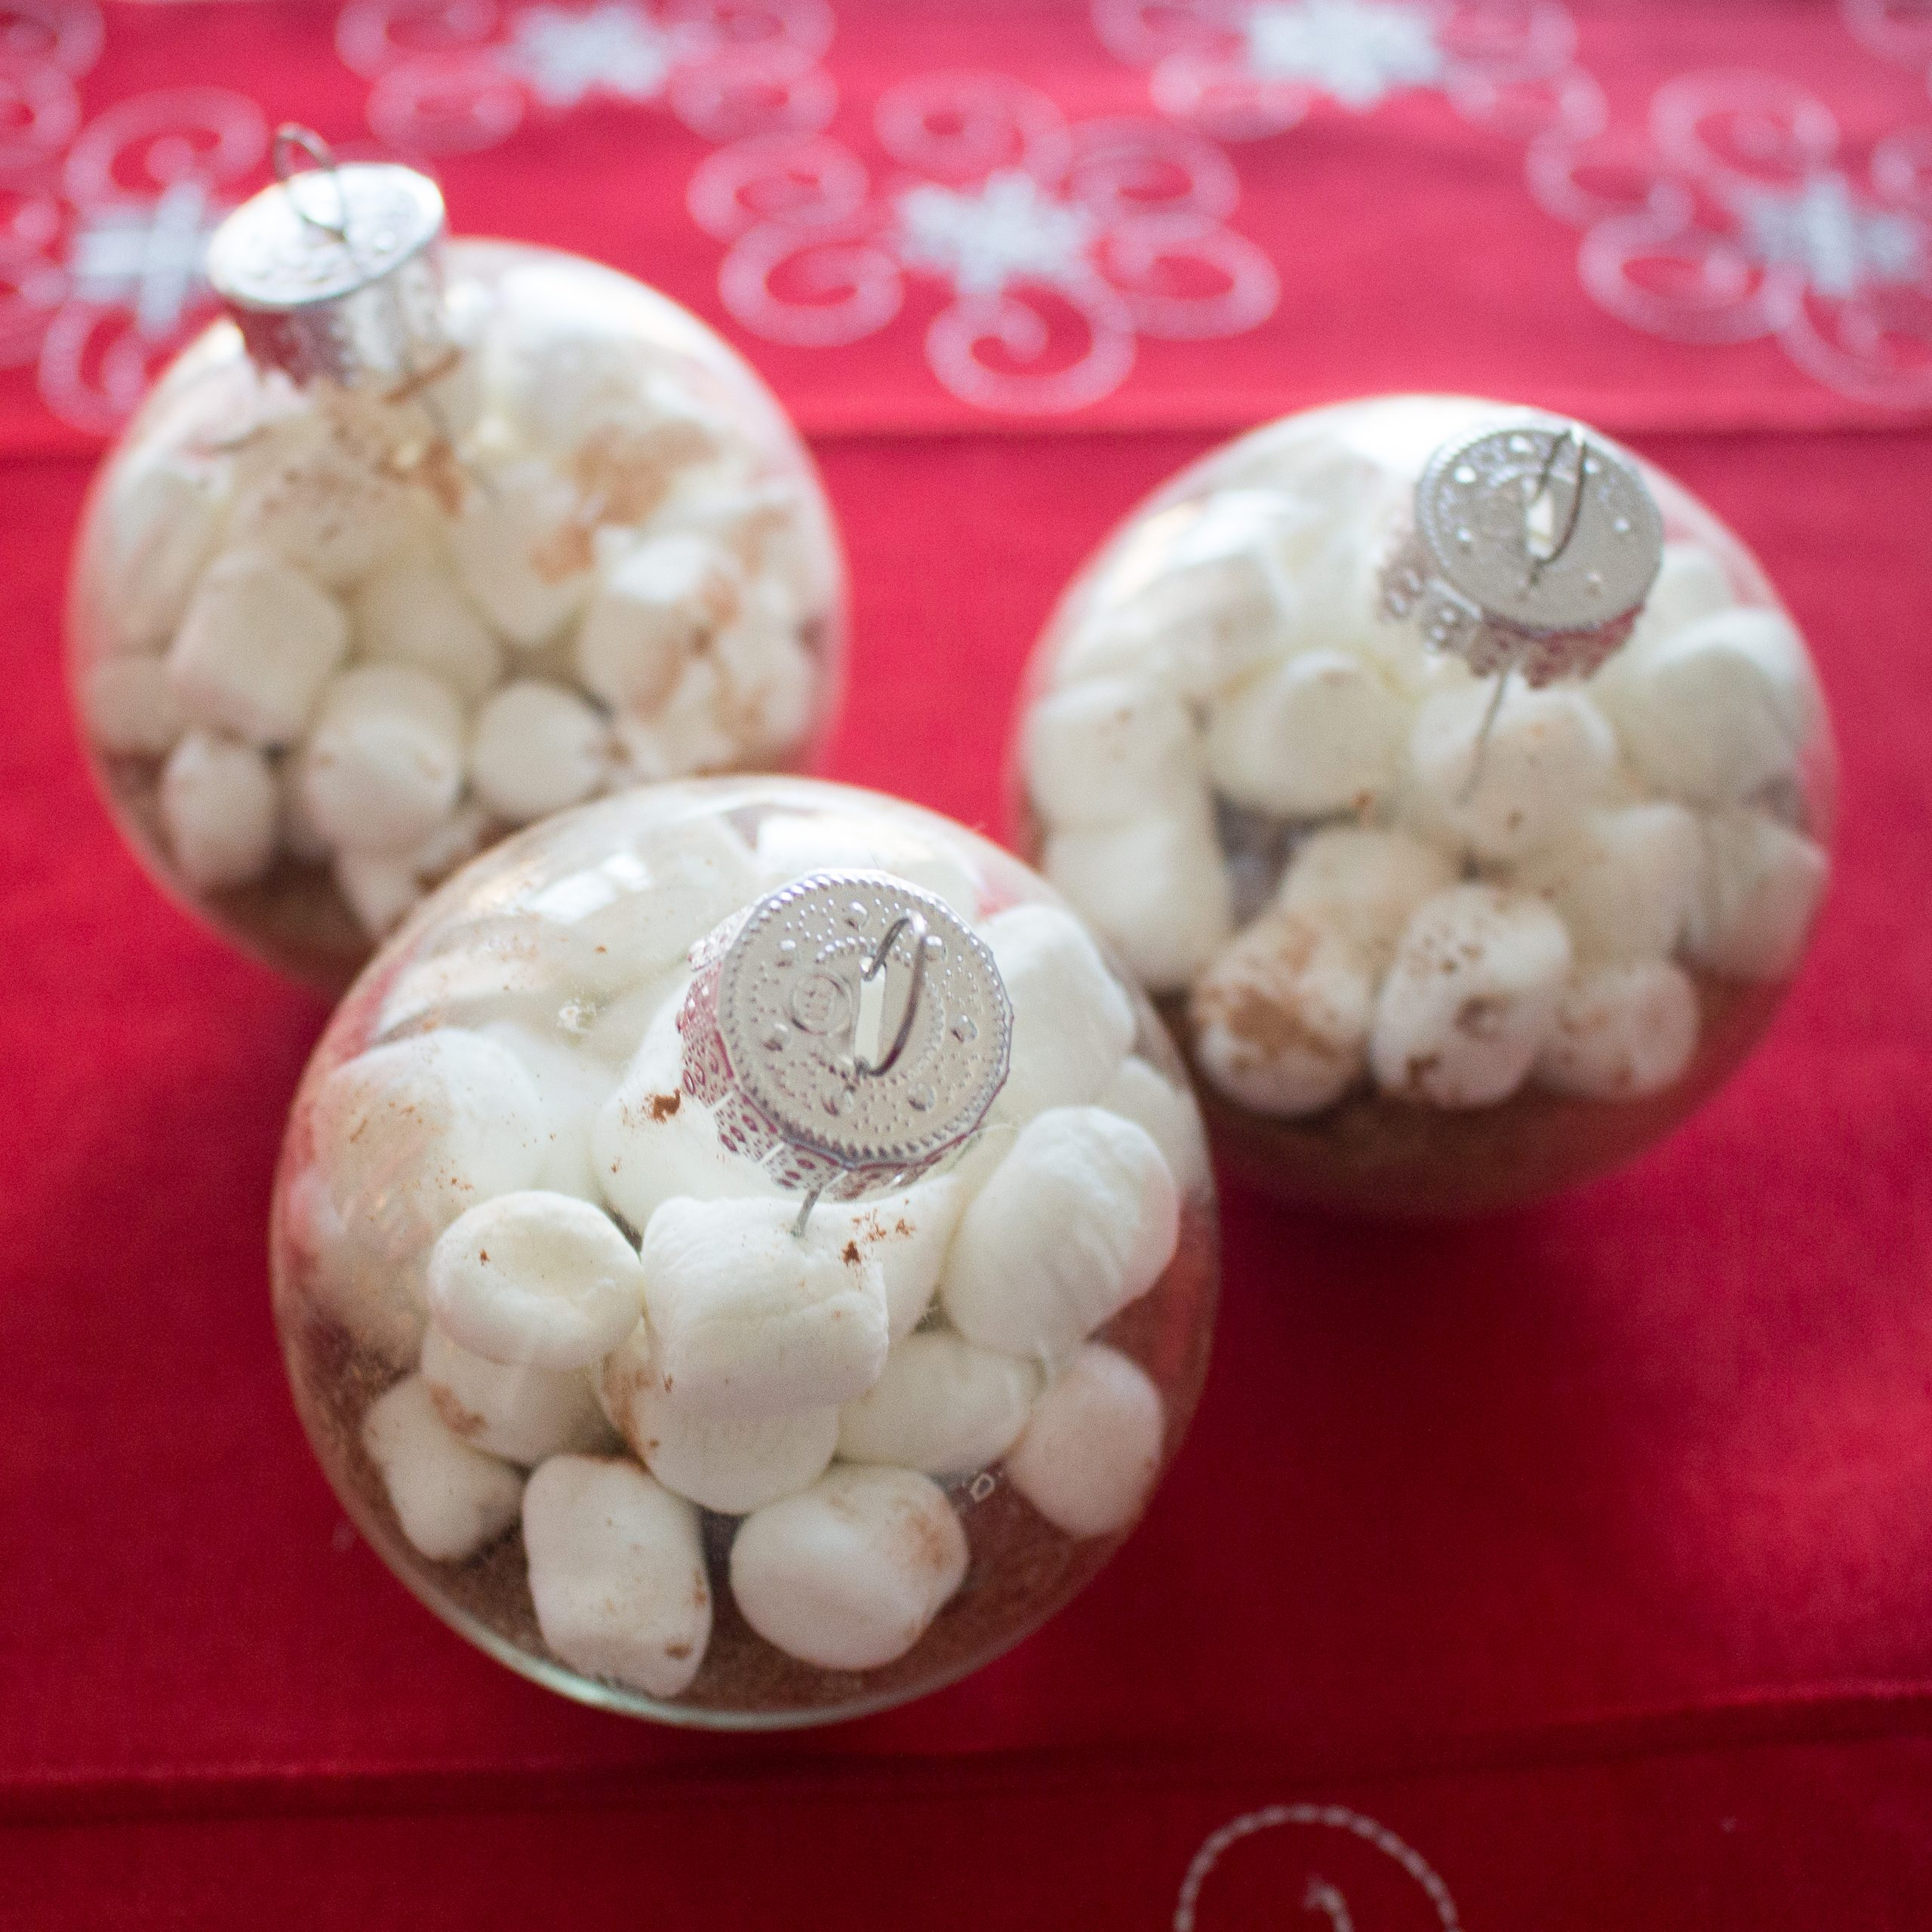 These DIY hot chocolate ornaments make the perfect easy gift idea!